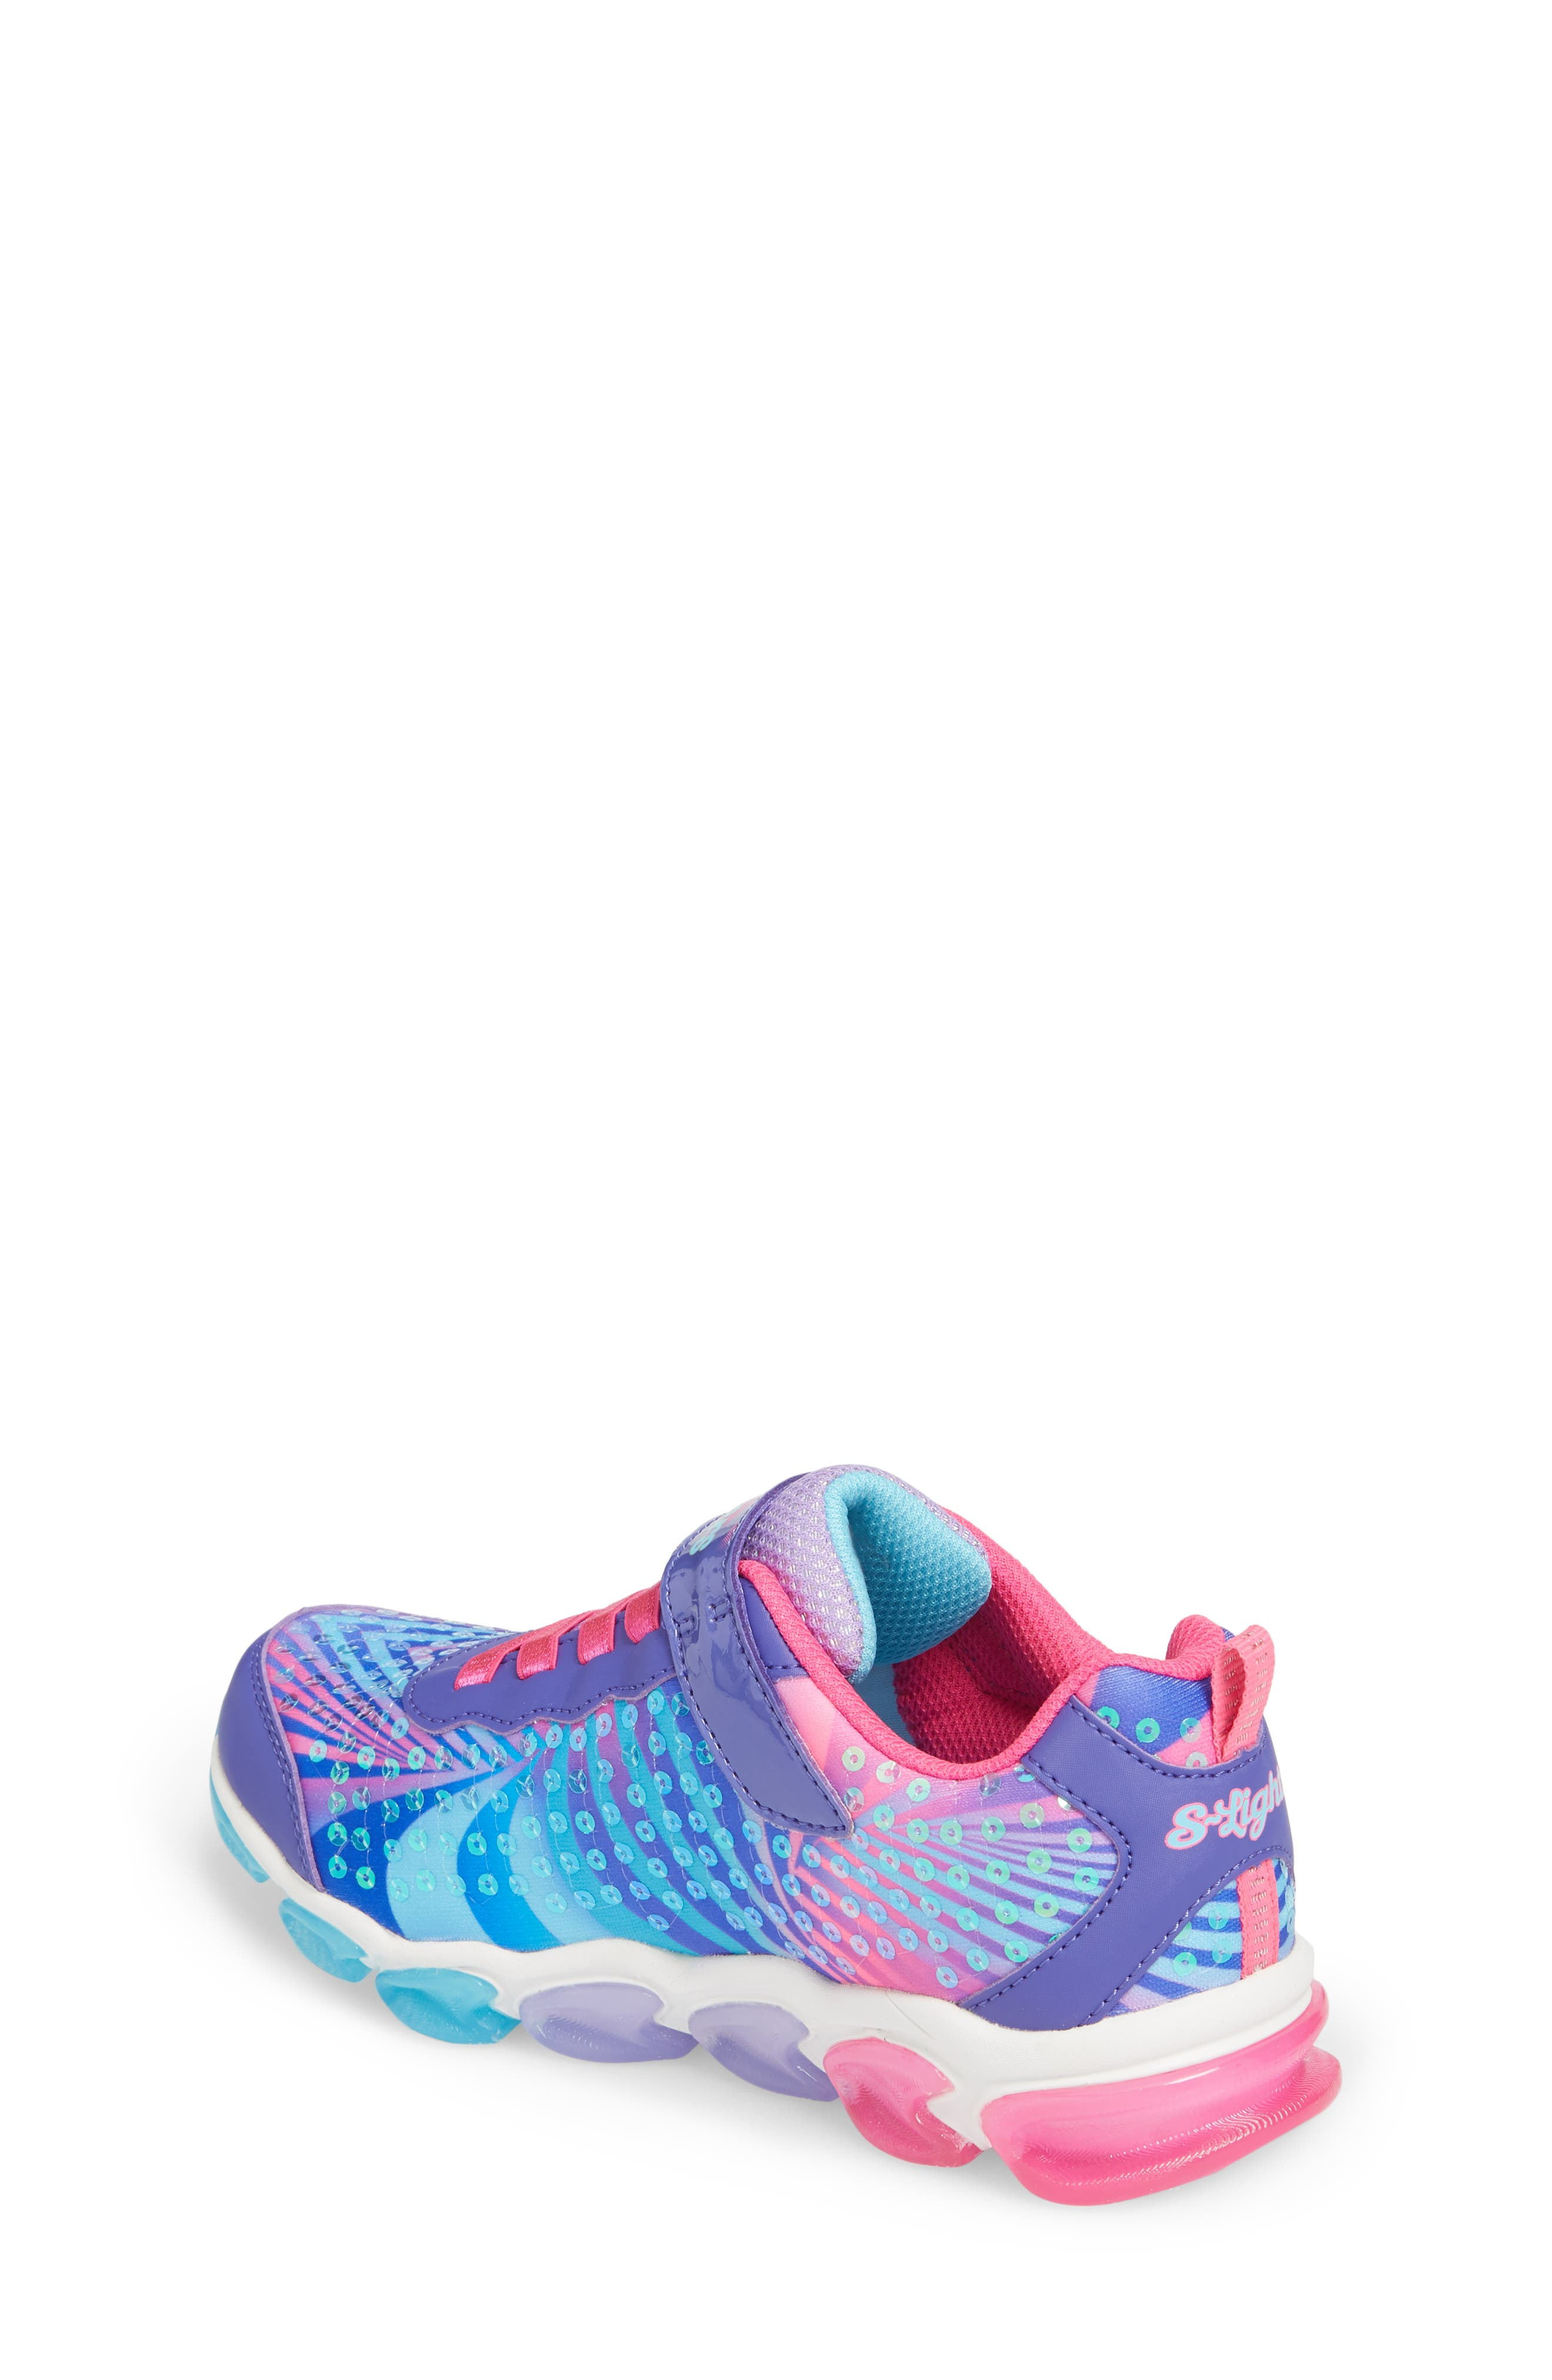 Jelly Beams Light-Up Sneaker,                             Alternate thumbnail 2, color,                             500